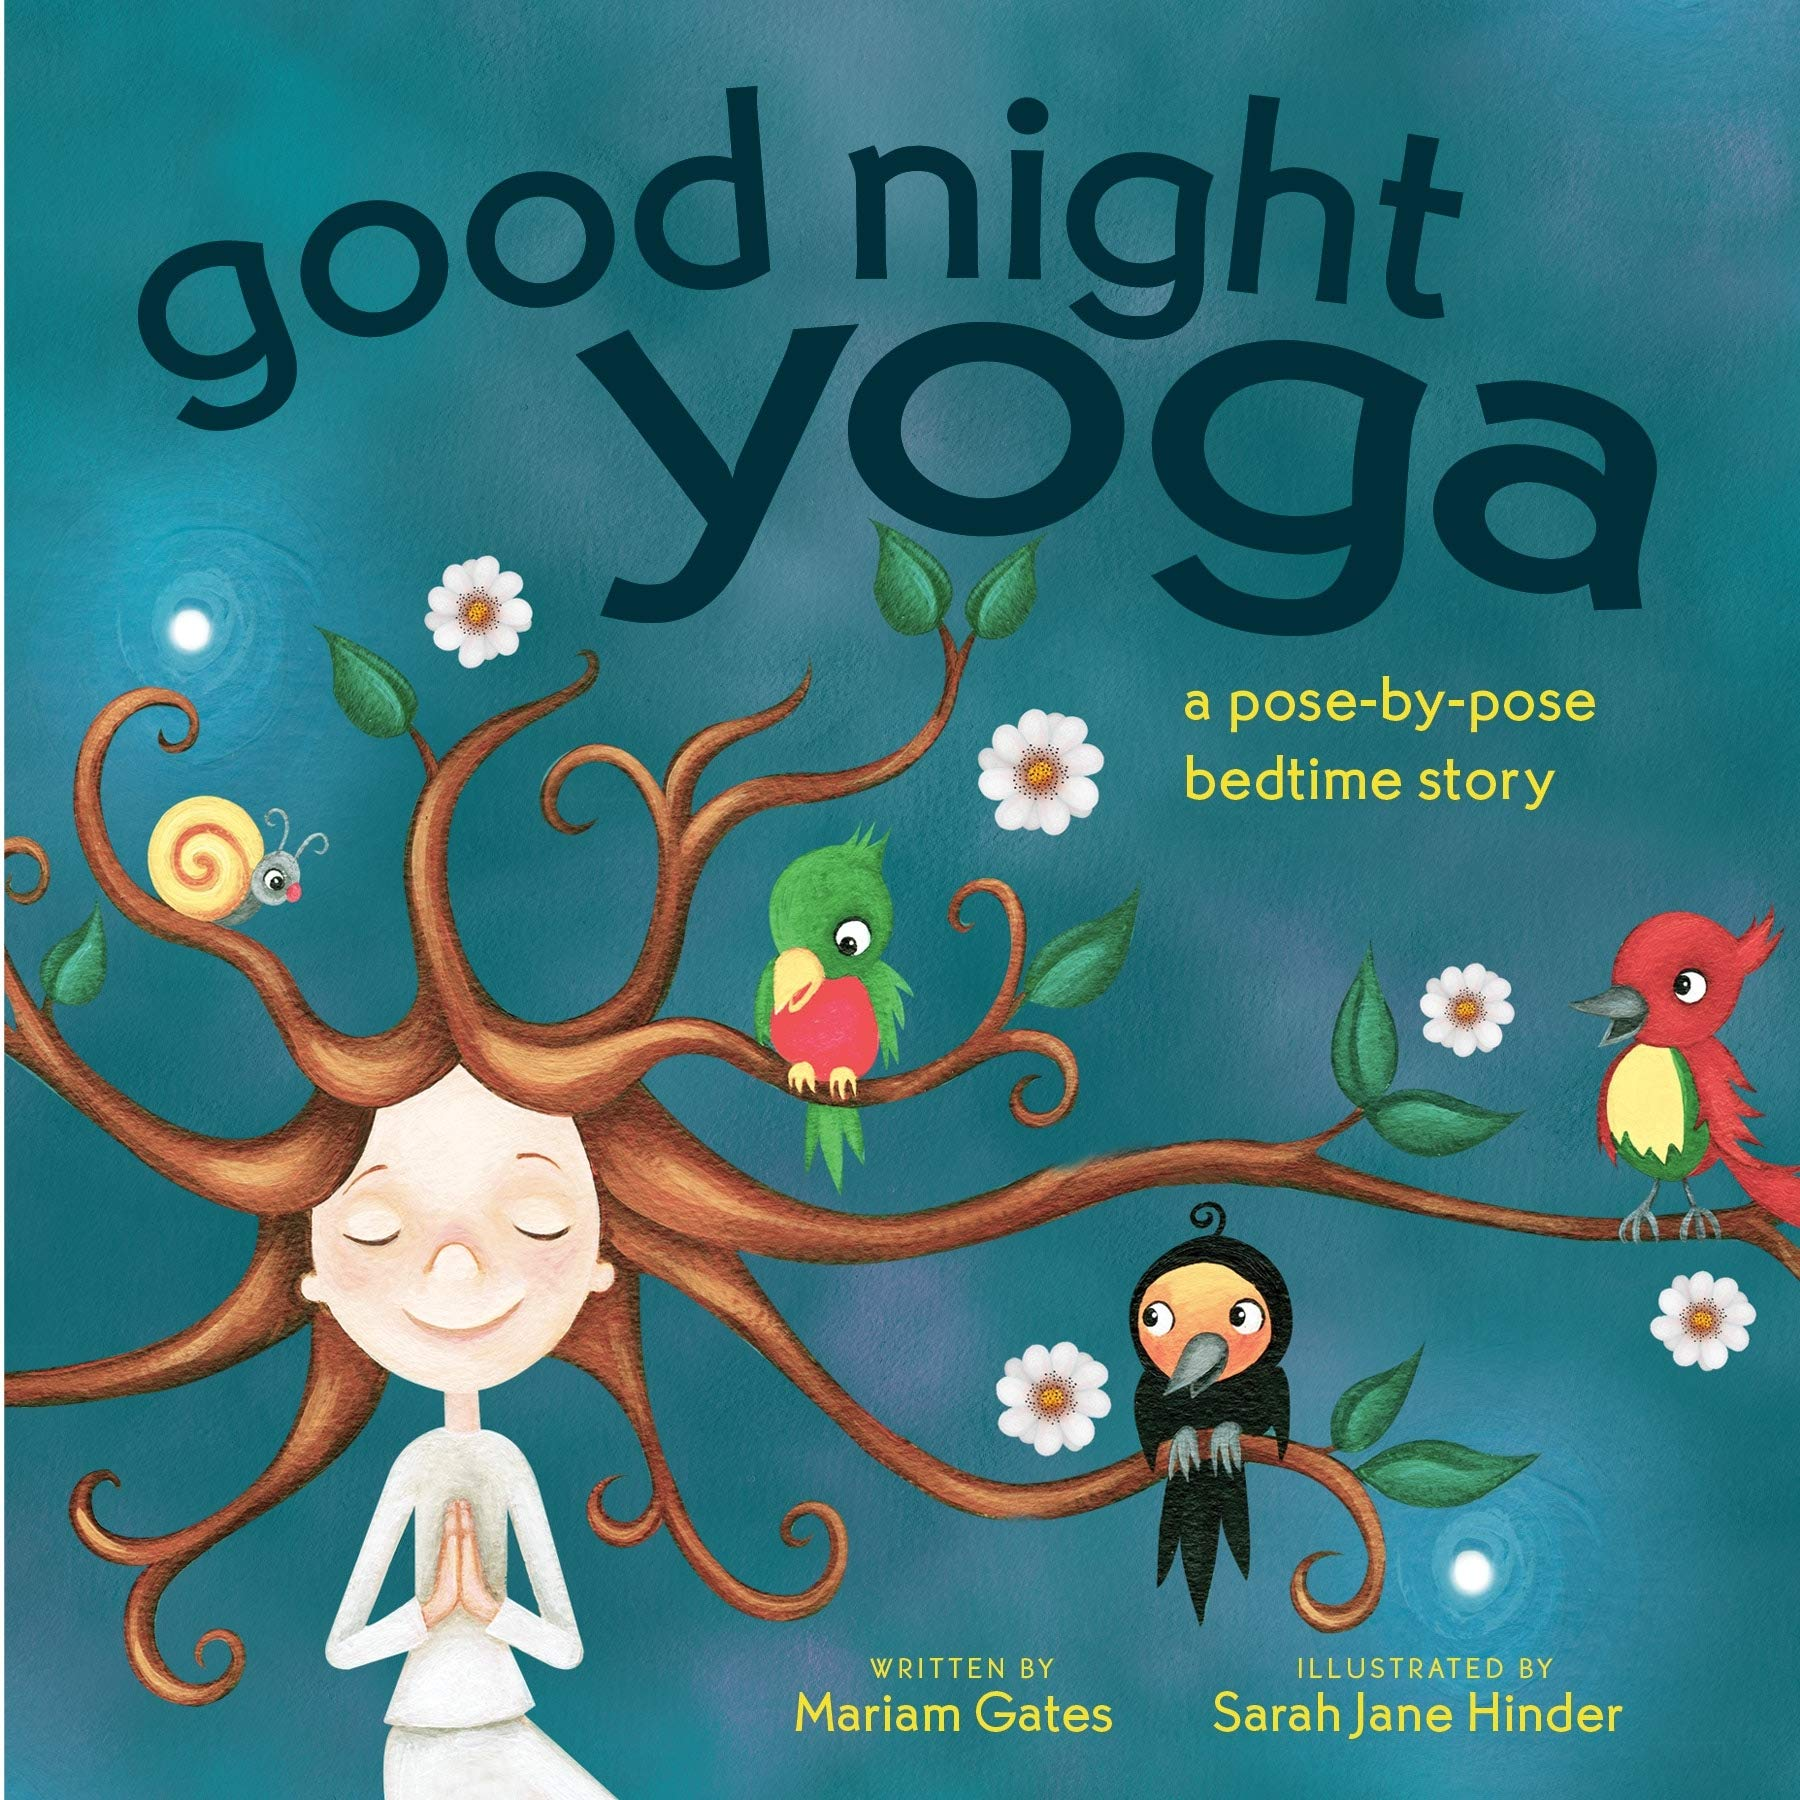 Amazon.com: Good Night Yoga: A Pose-by-Pose Bedtime Story ...